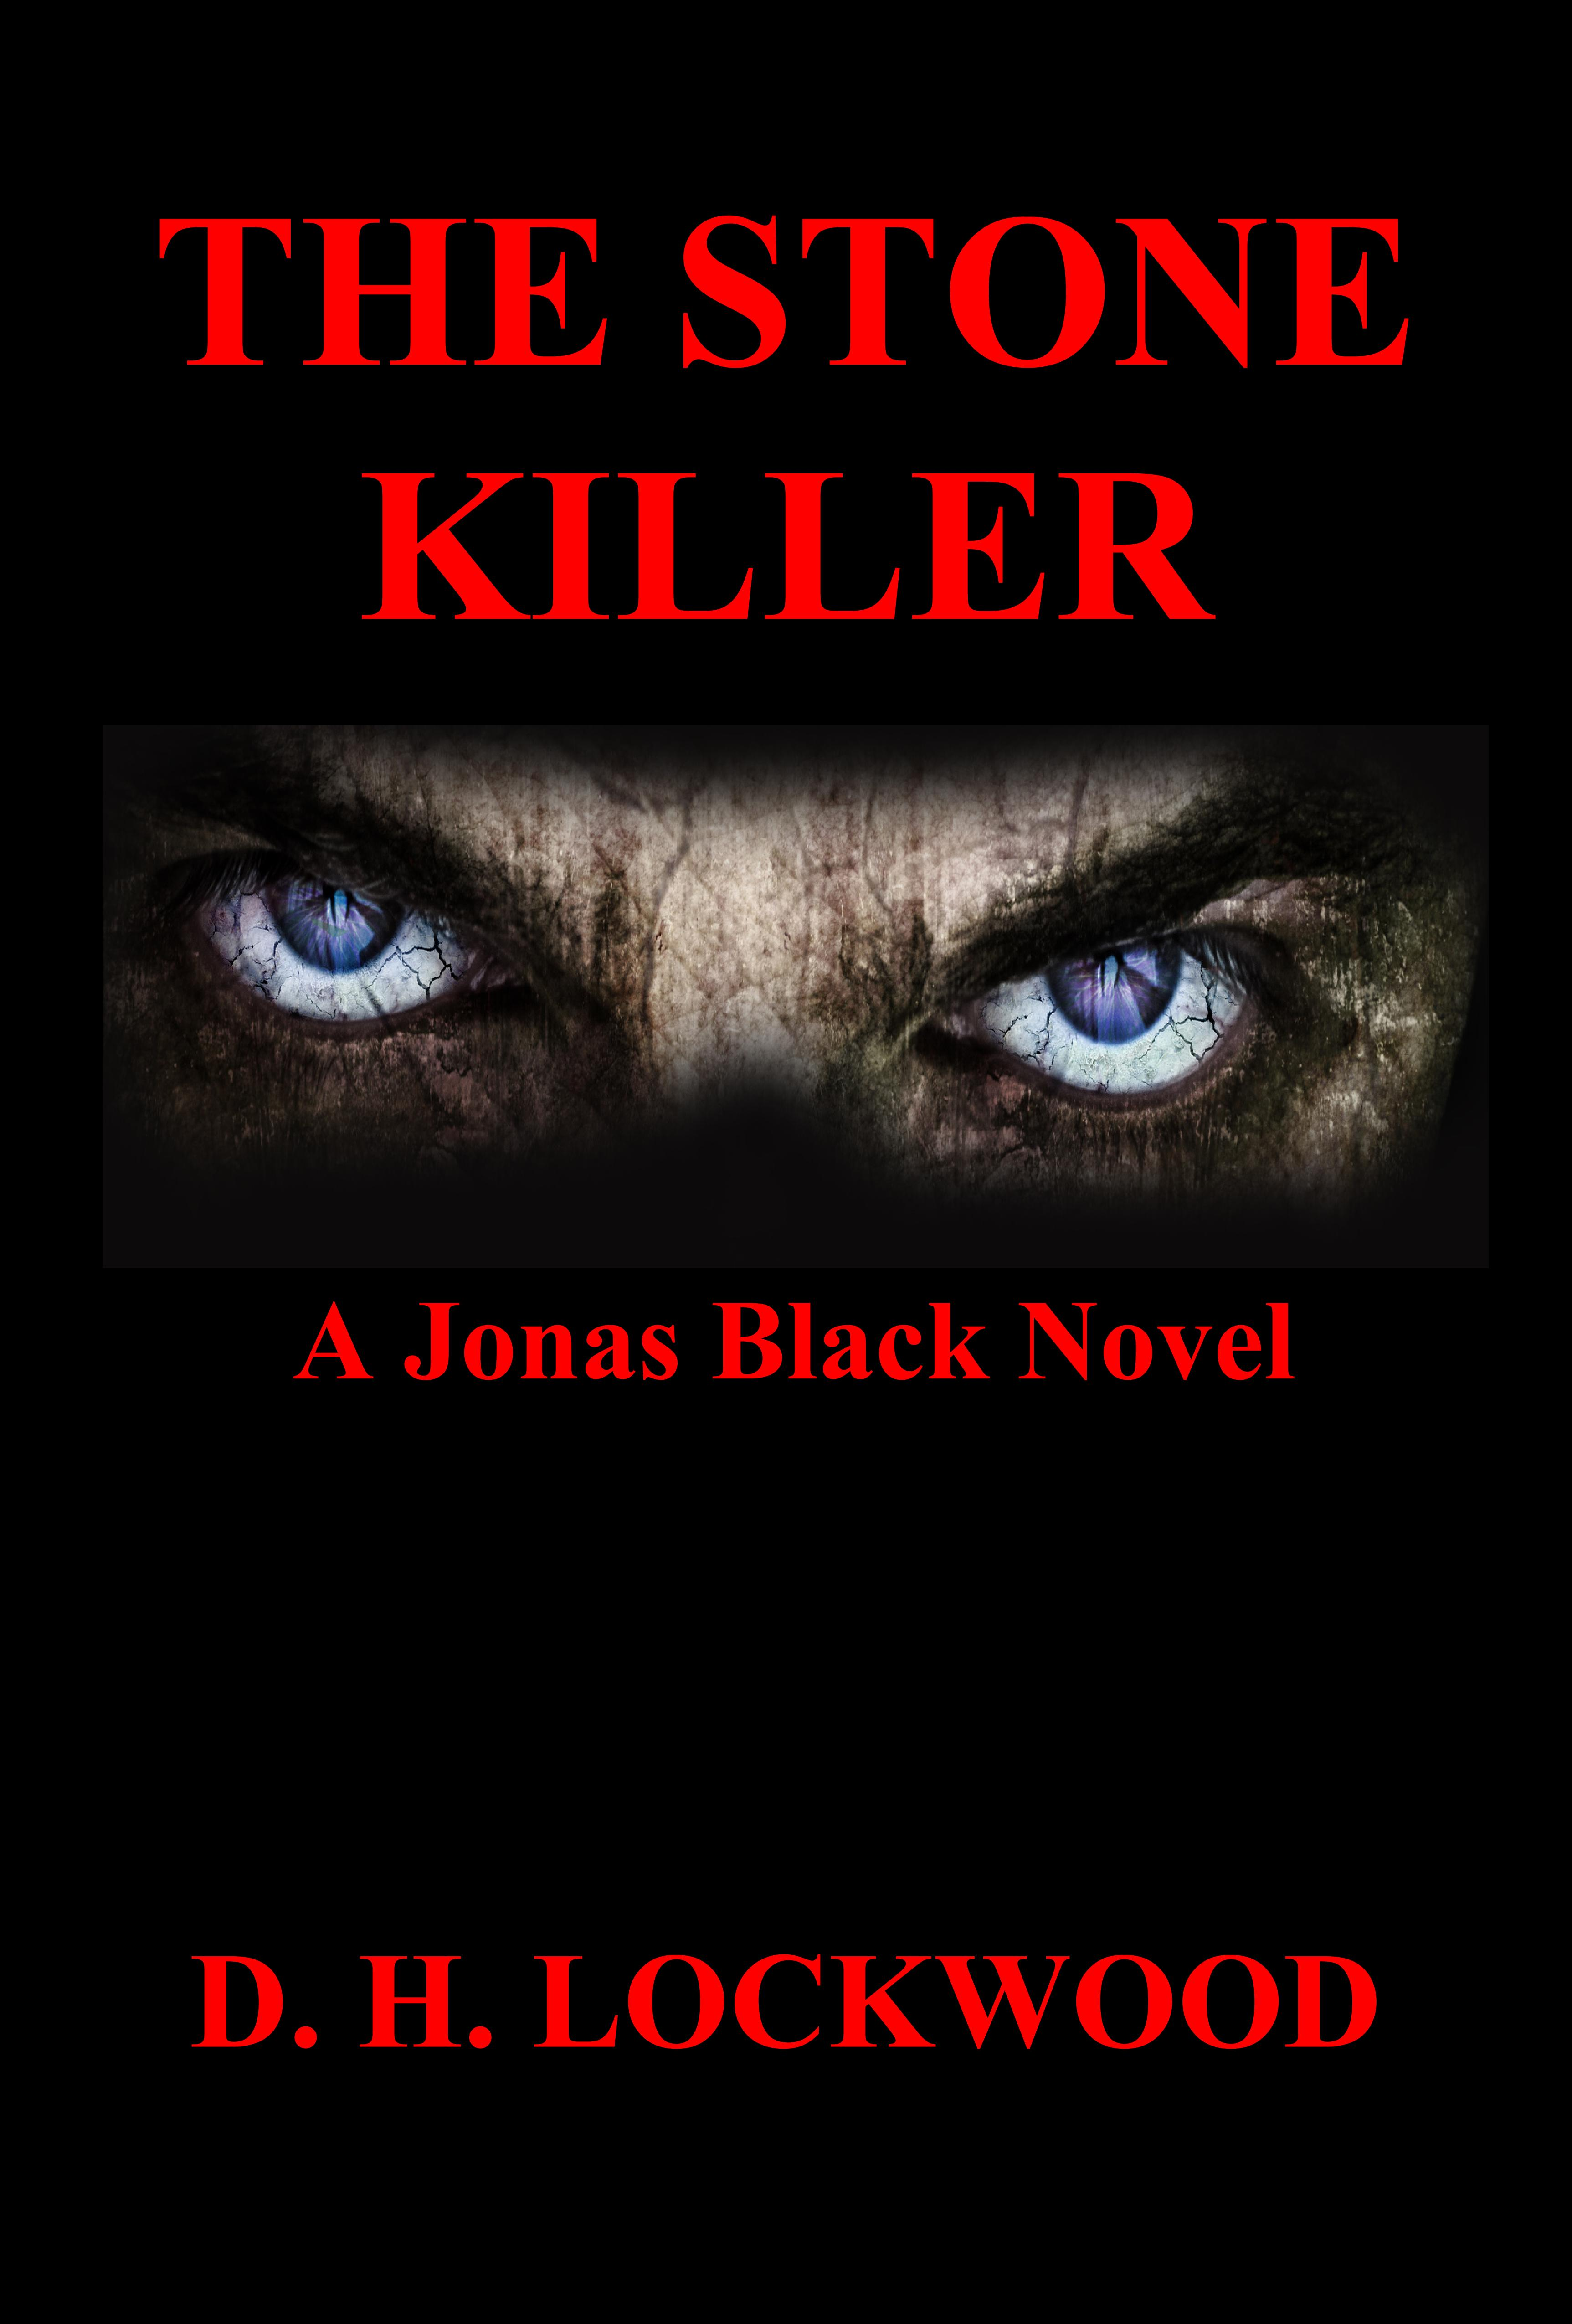 the killer in the backseat essay Urban legend: killer in the backseat research papers looks at one of the many urban legends and how it reflects information about attitudes and behaviors of society find research paper help today at paper masters.